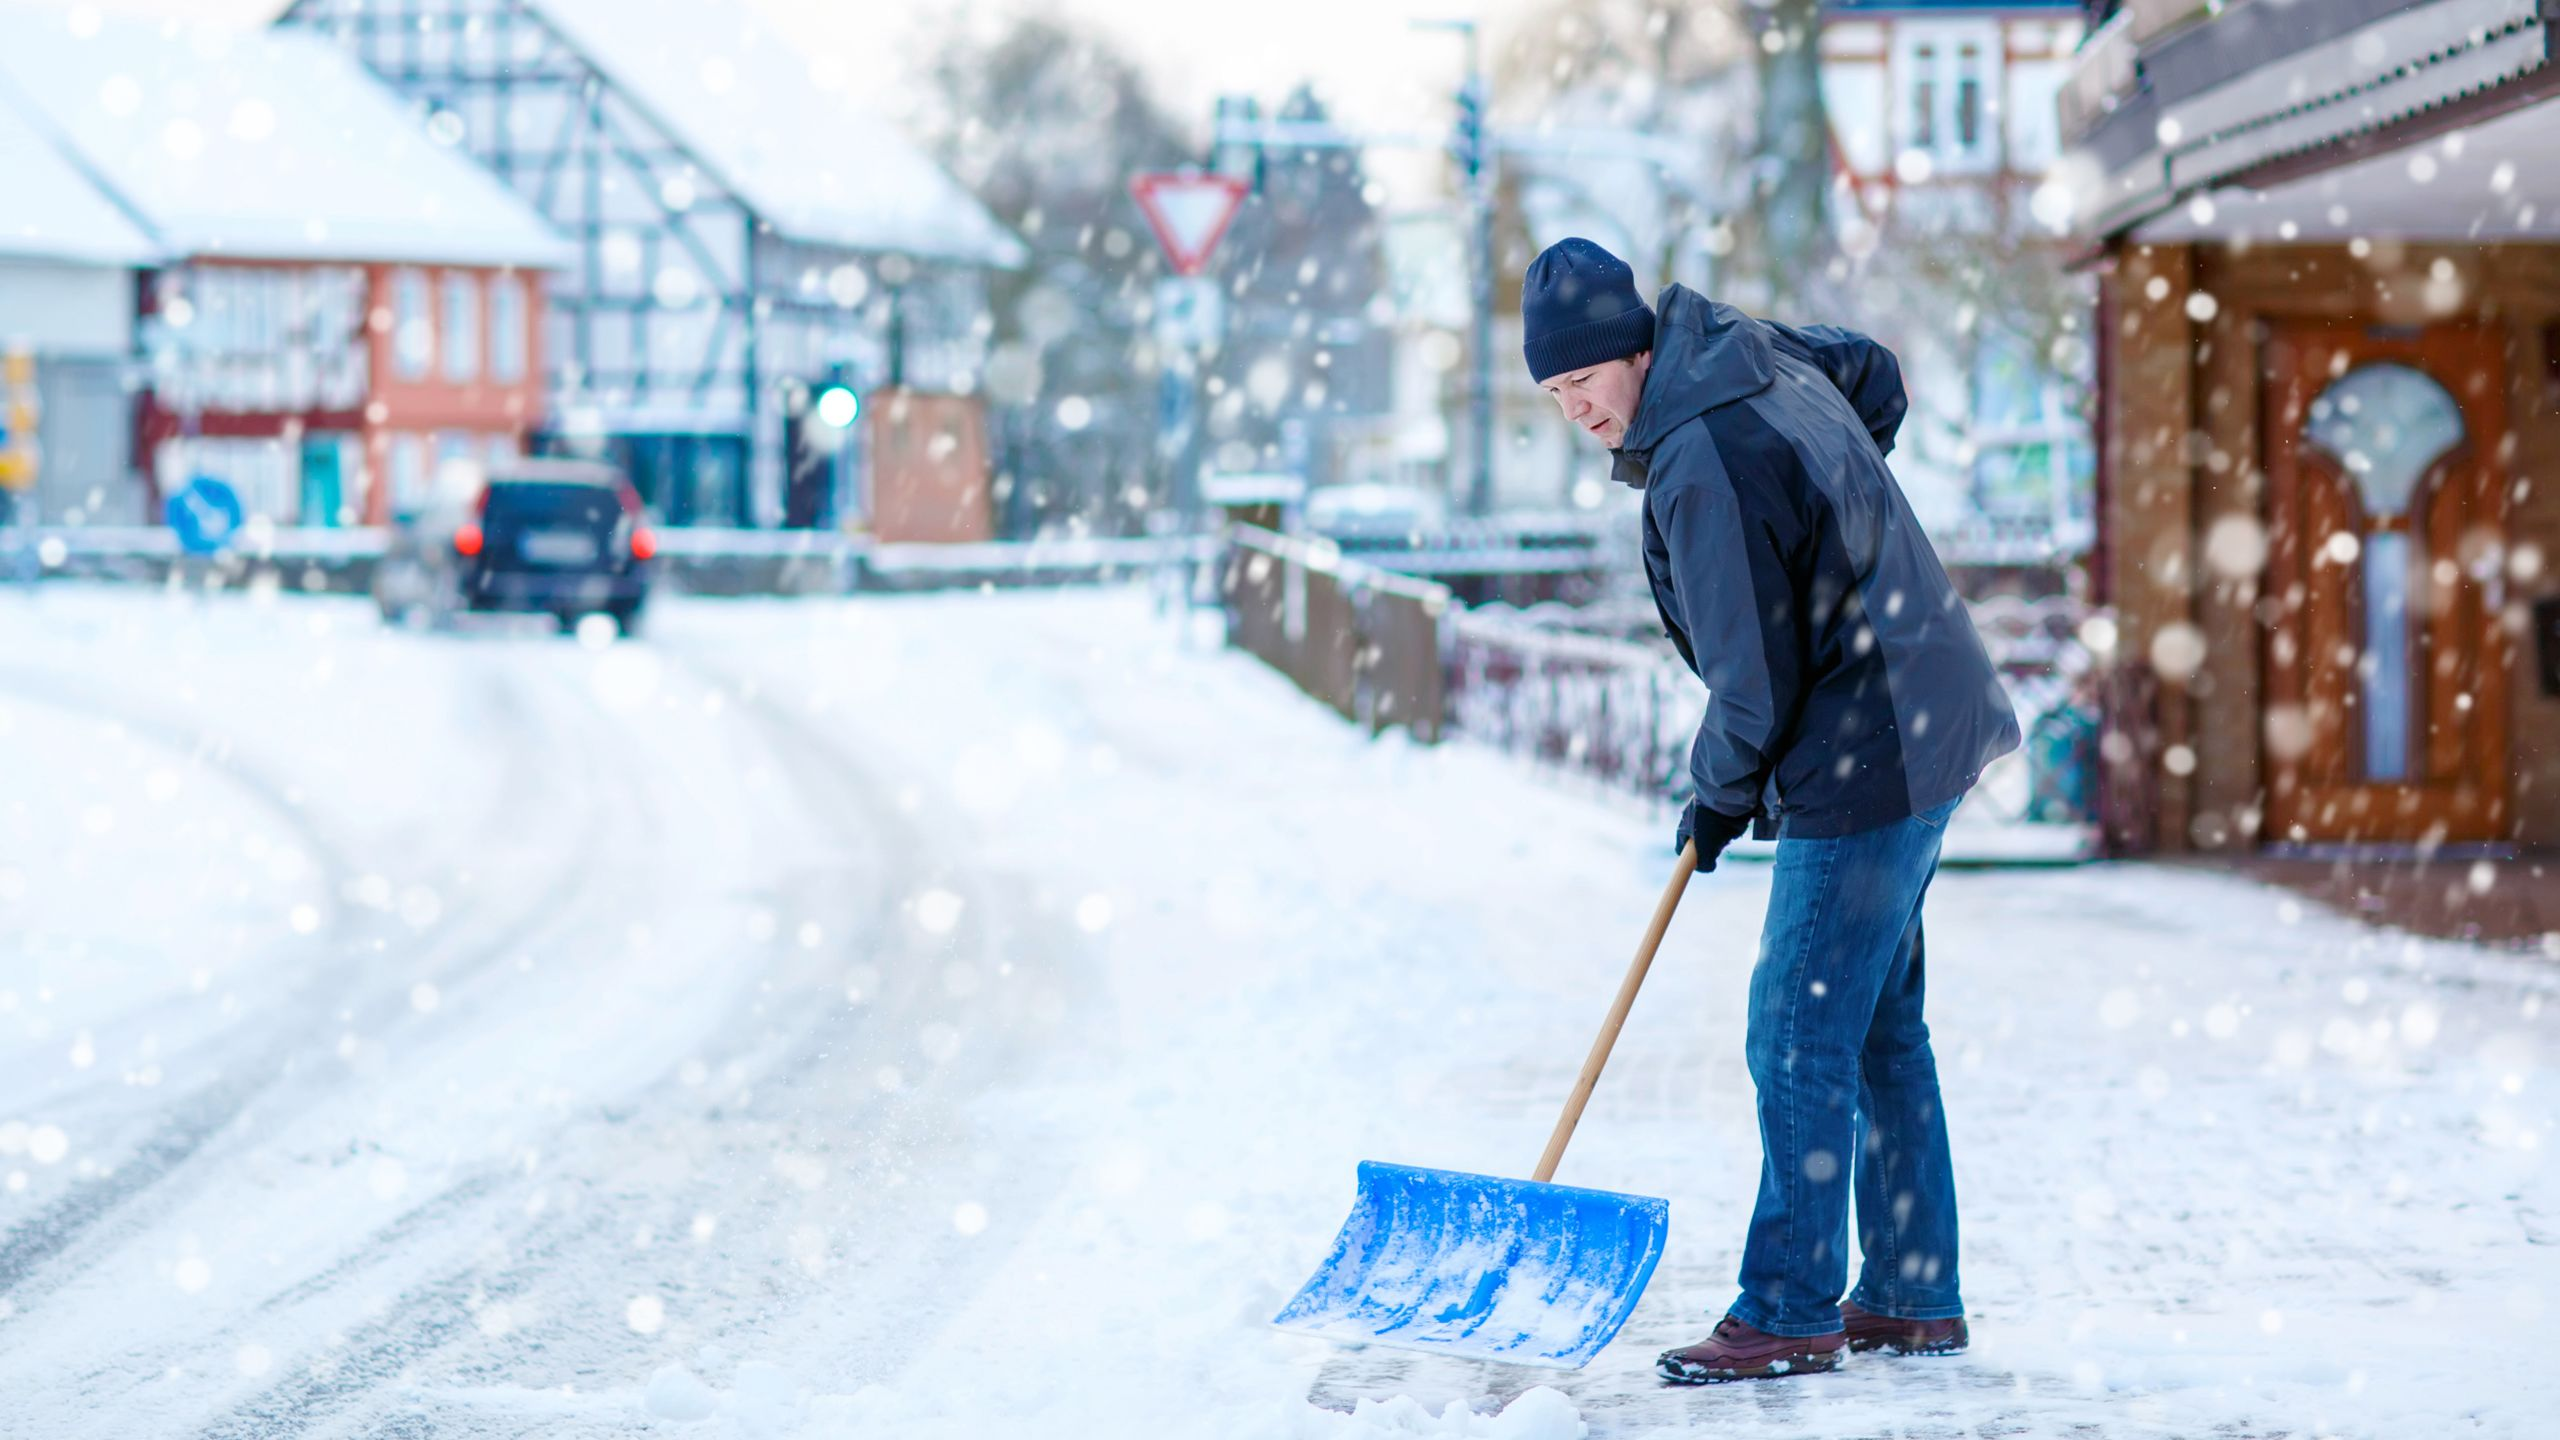 How to Prepare—and Stay Safe—in a Winter Storm